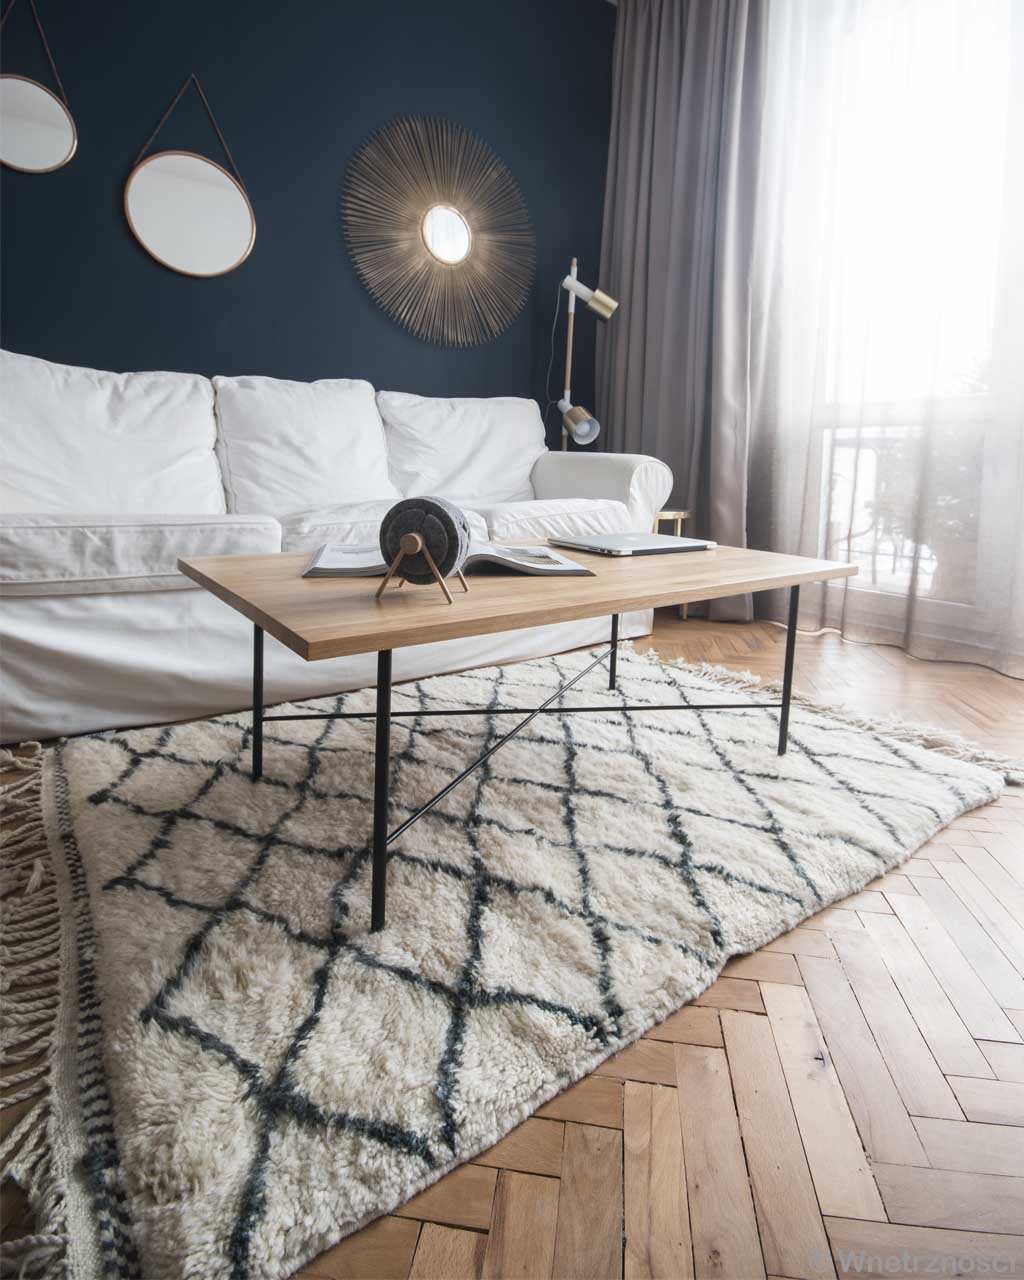 woolen sofa center table and lamp made by moroccan traditional cheap rugs